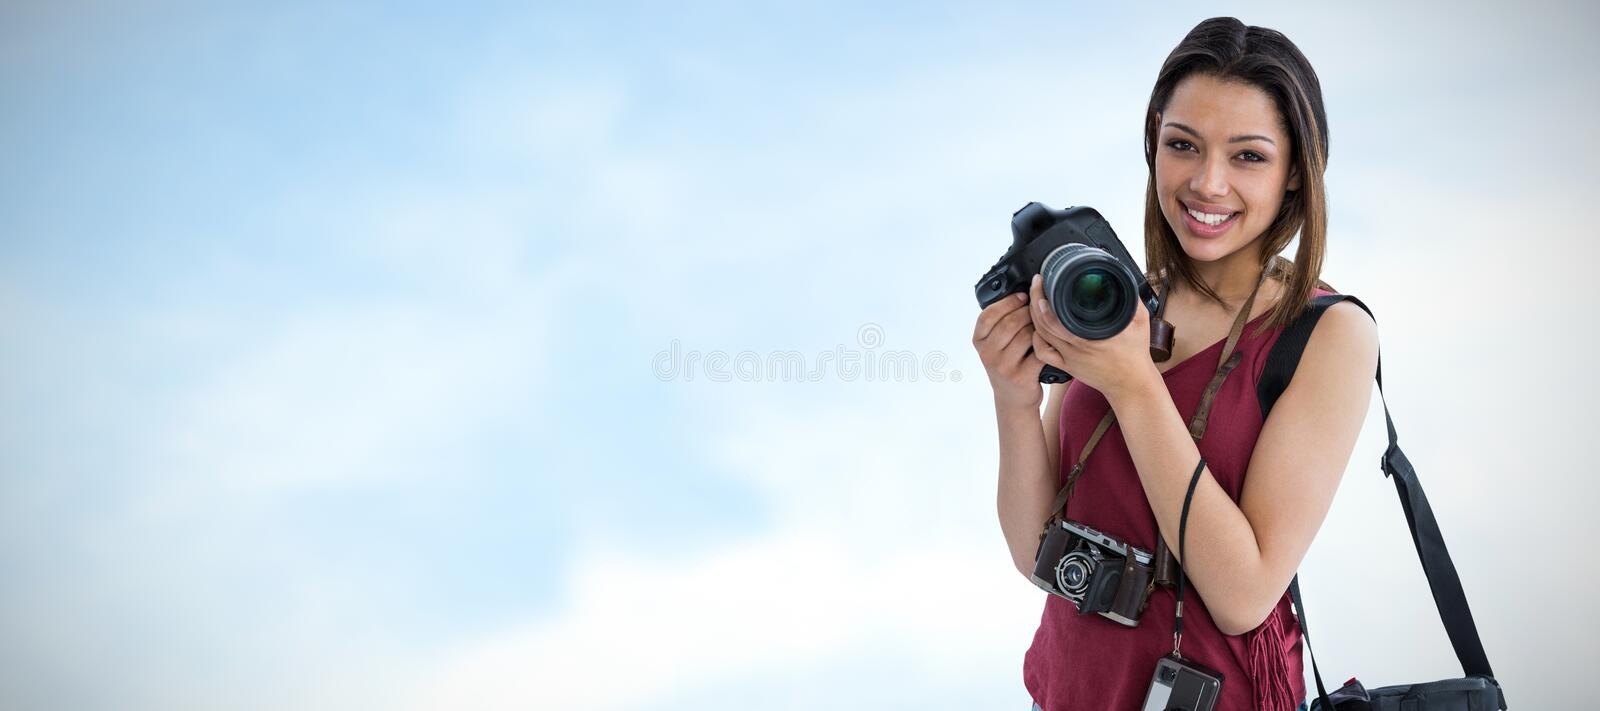 Composite image of portrait of happy young woman holding digital camera stock photography